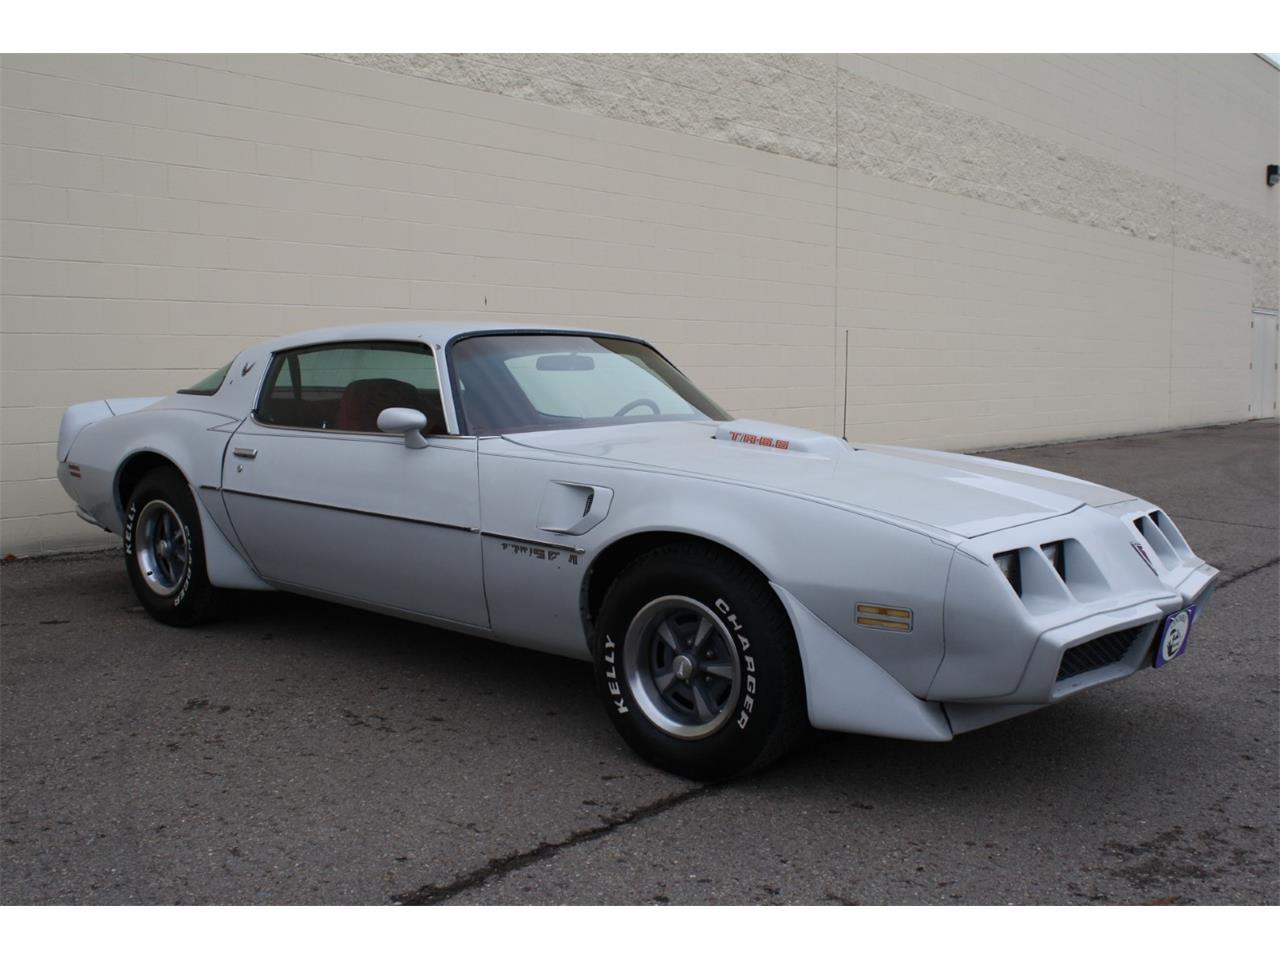 Large Picture of 1979 Firebird Trans Am located in Tacoma Washington Auction Vehicle Offered by Lucky Collector Car Auctions - Q67P